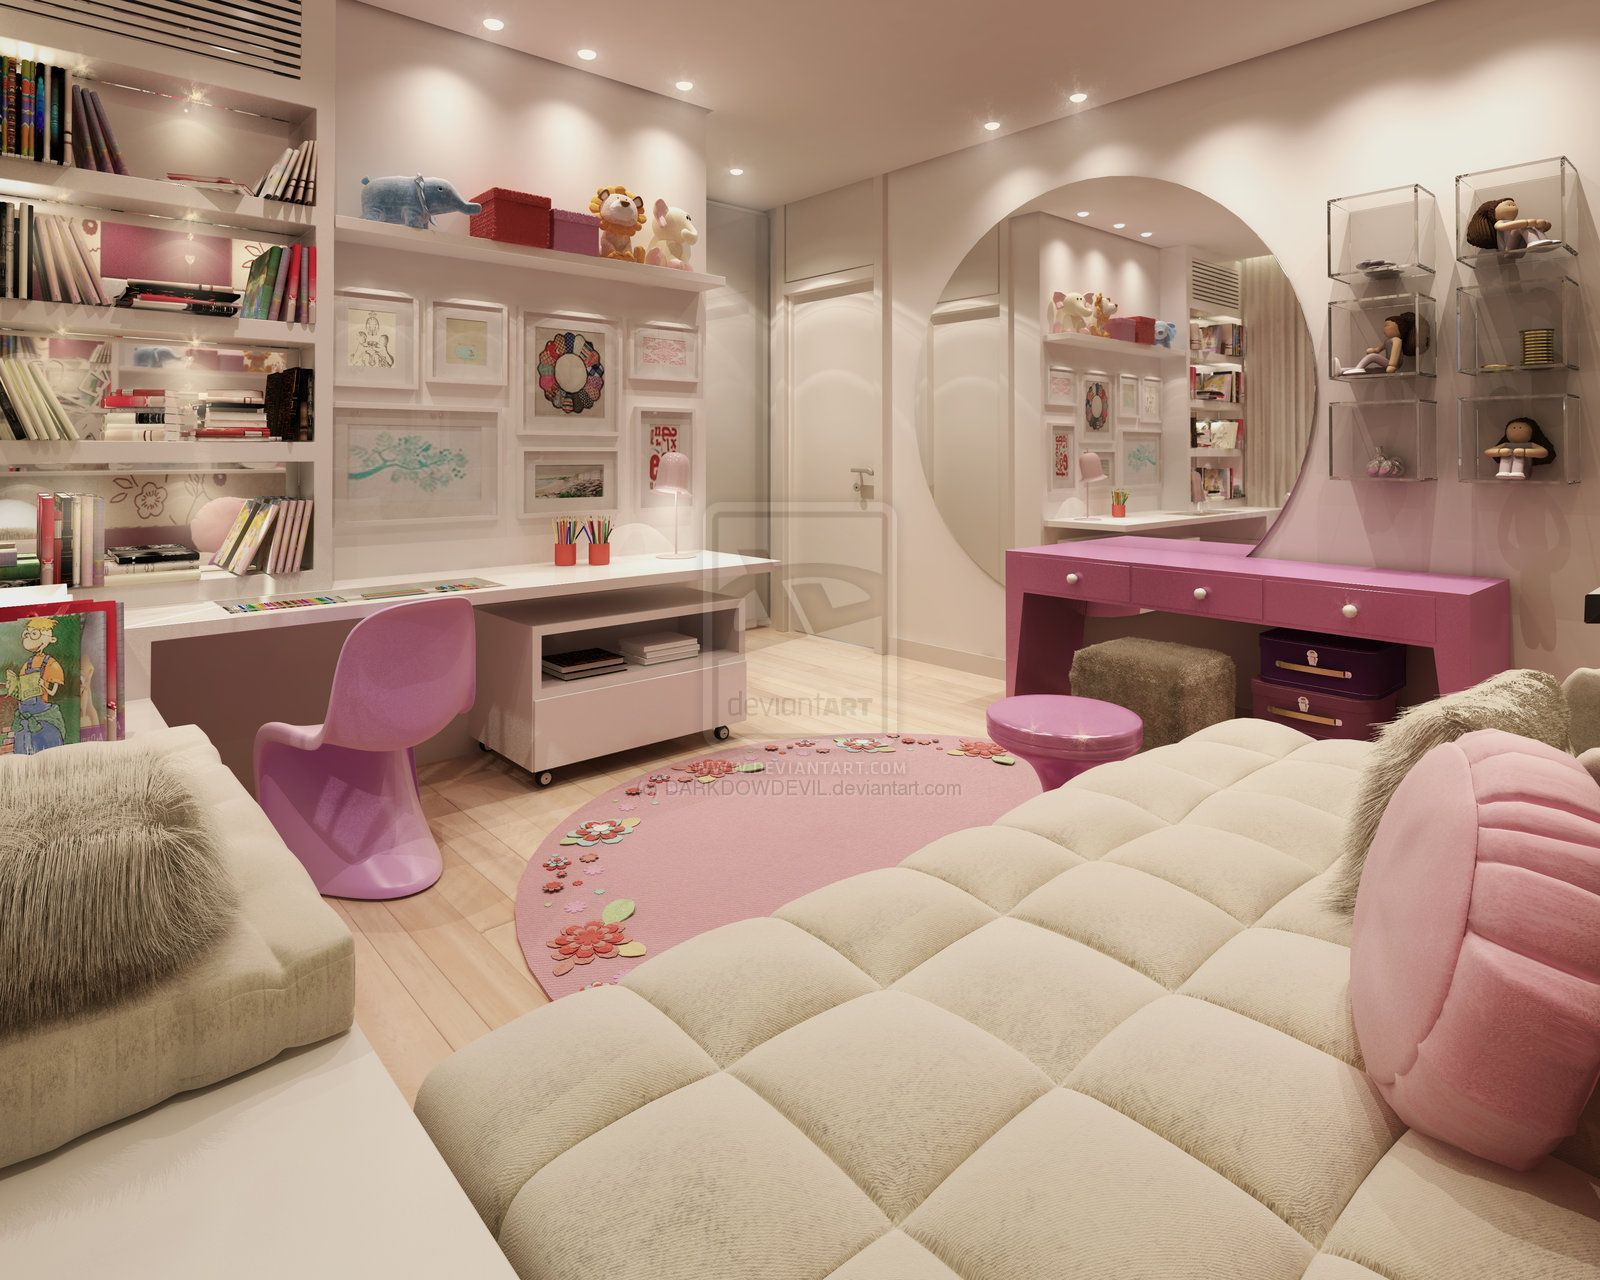 Girls Room Designs Girls' Bedroom Decoration Ideas And Tips  Teen Room Designs Teen